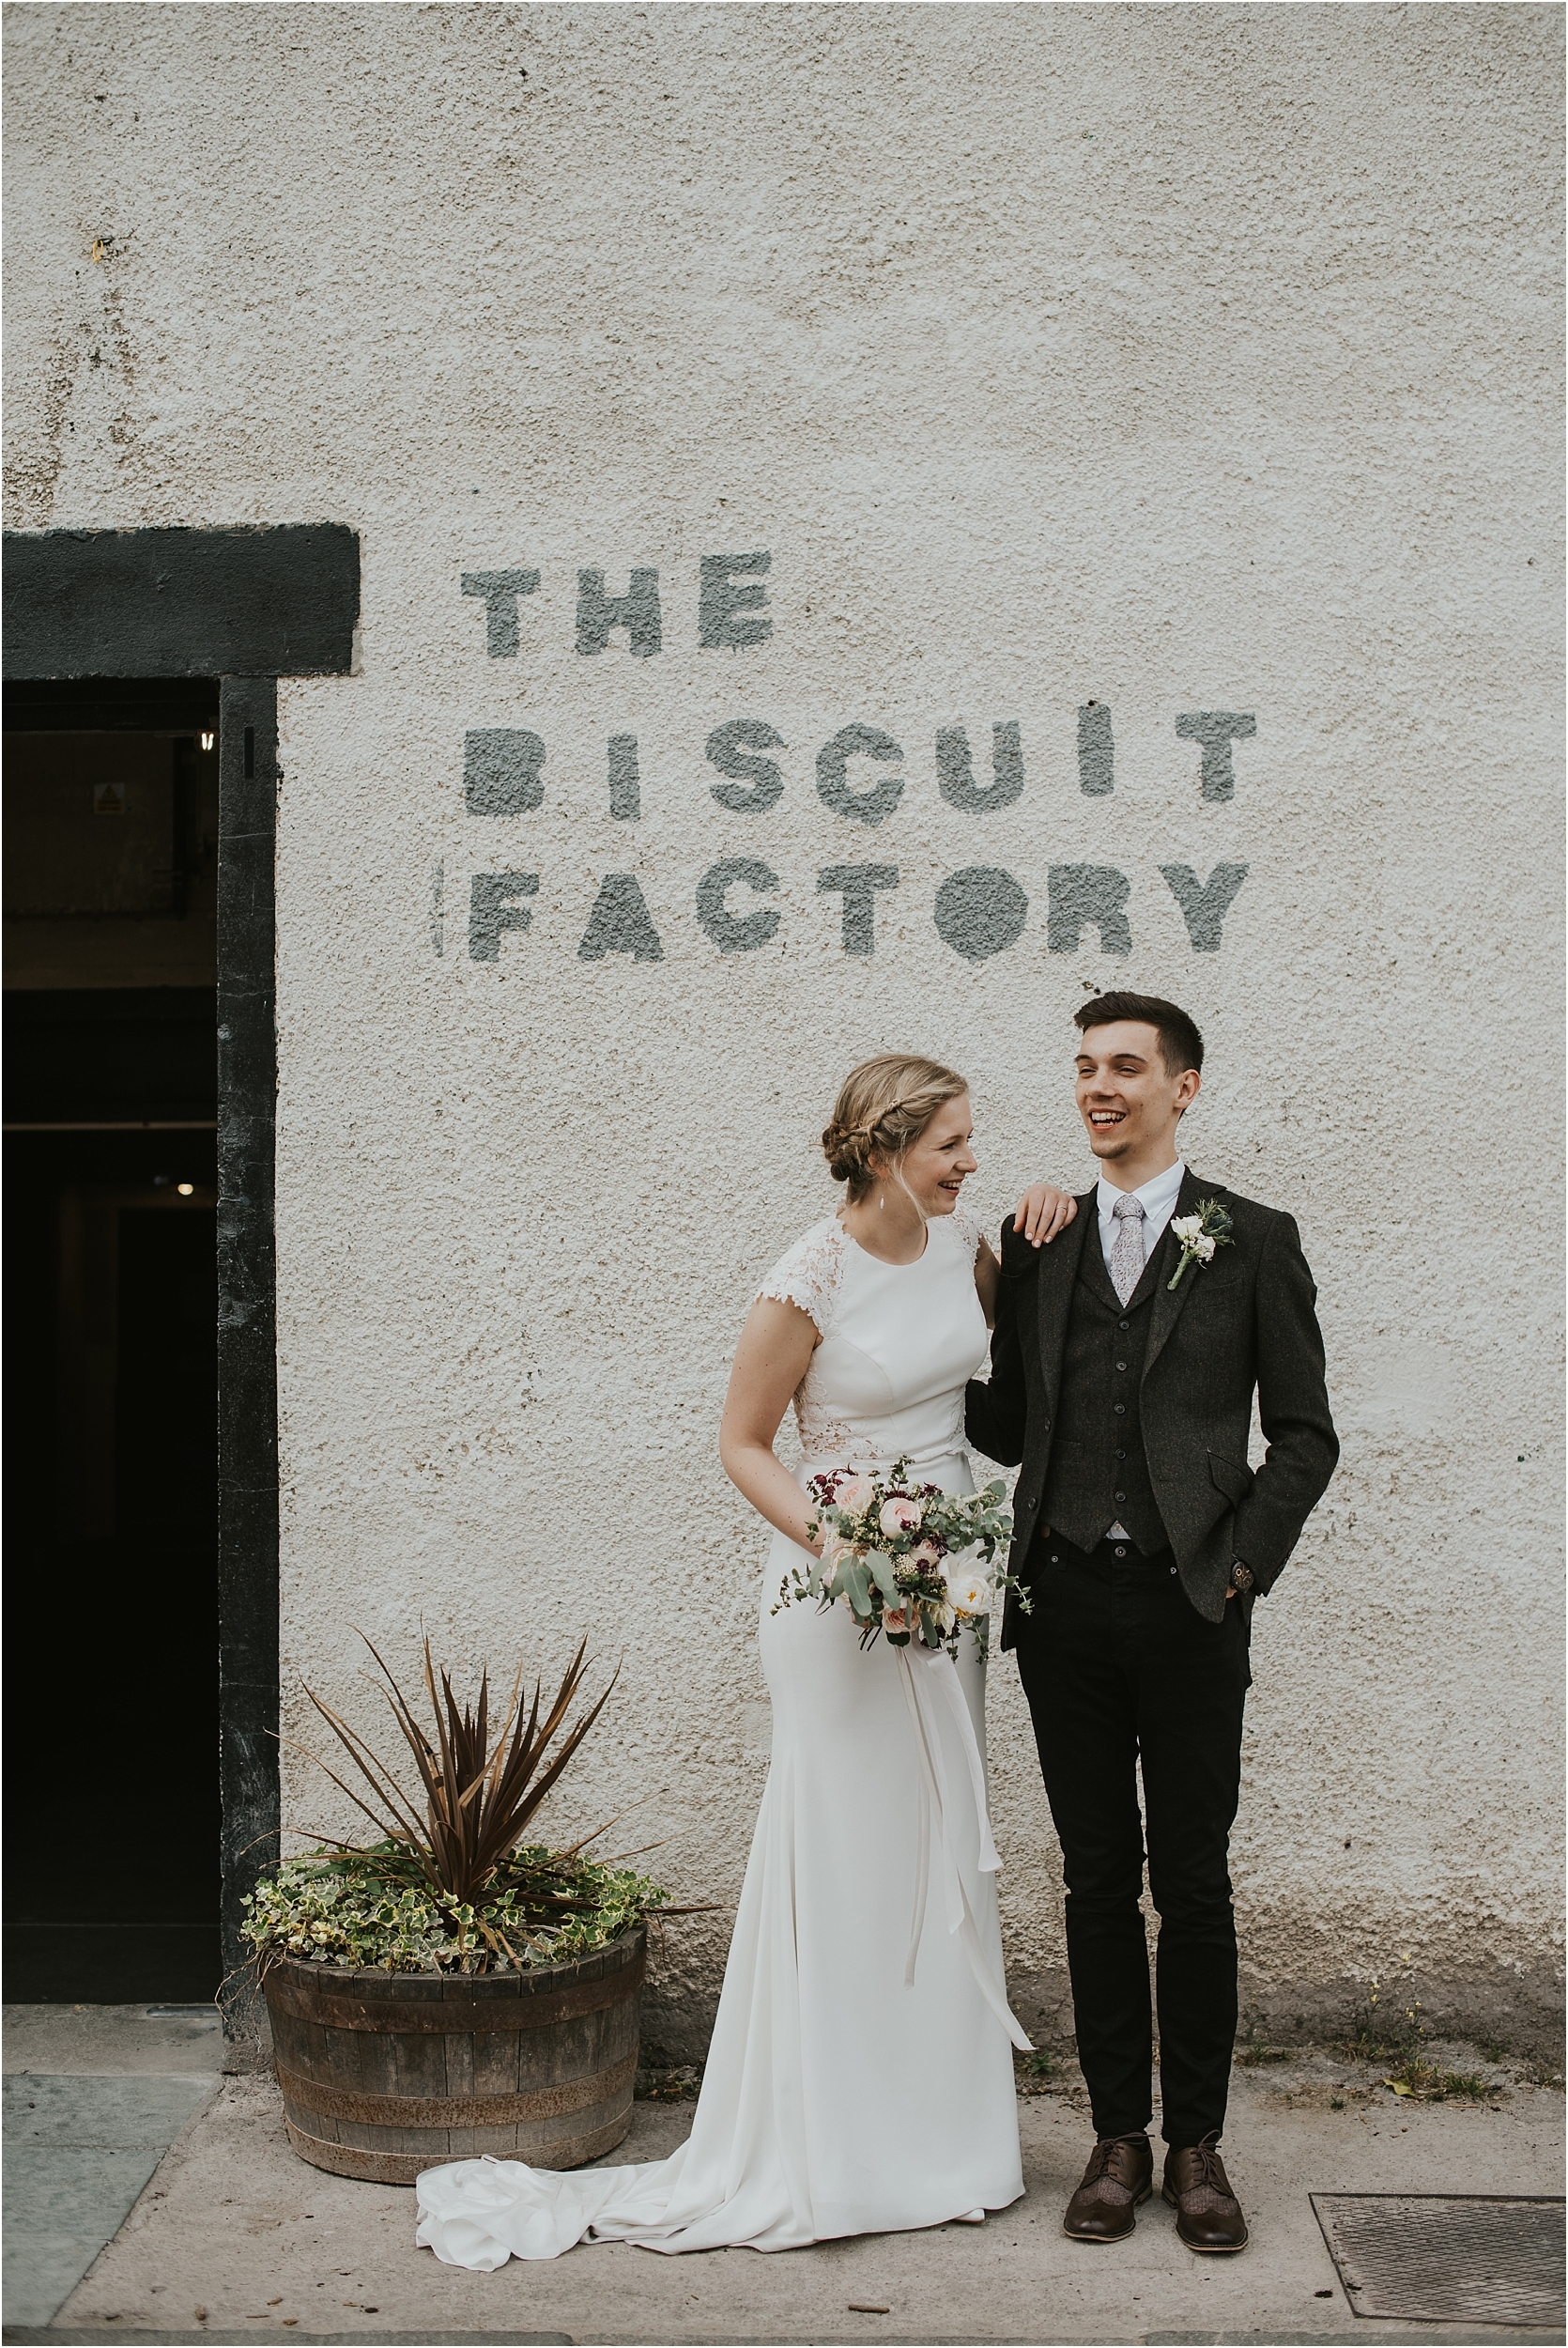 The-biscuit-factory-edinburgh-Claire-fleck-photography-__0421.jpg